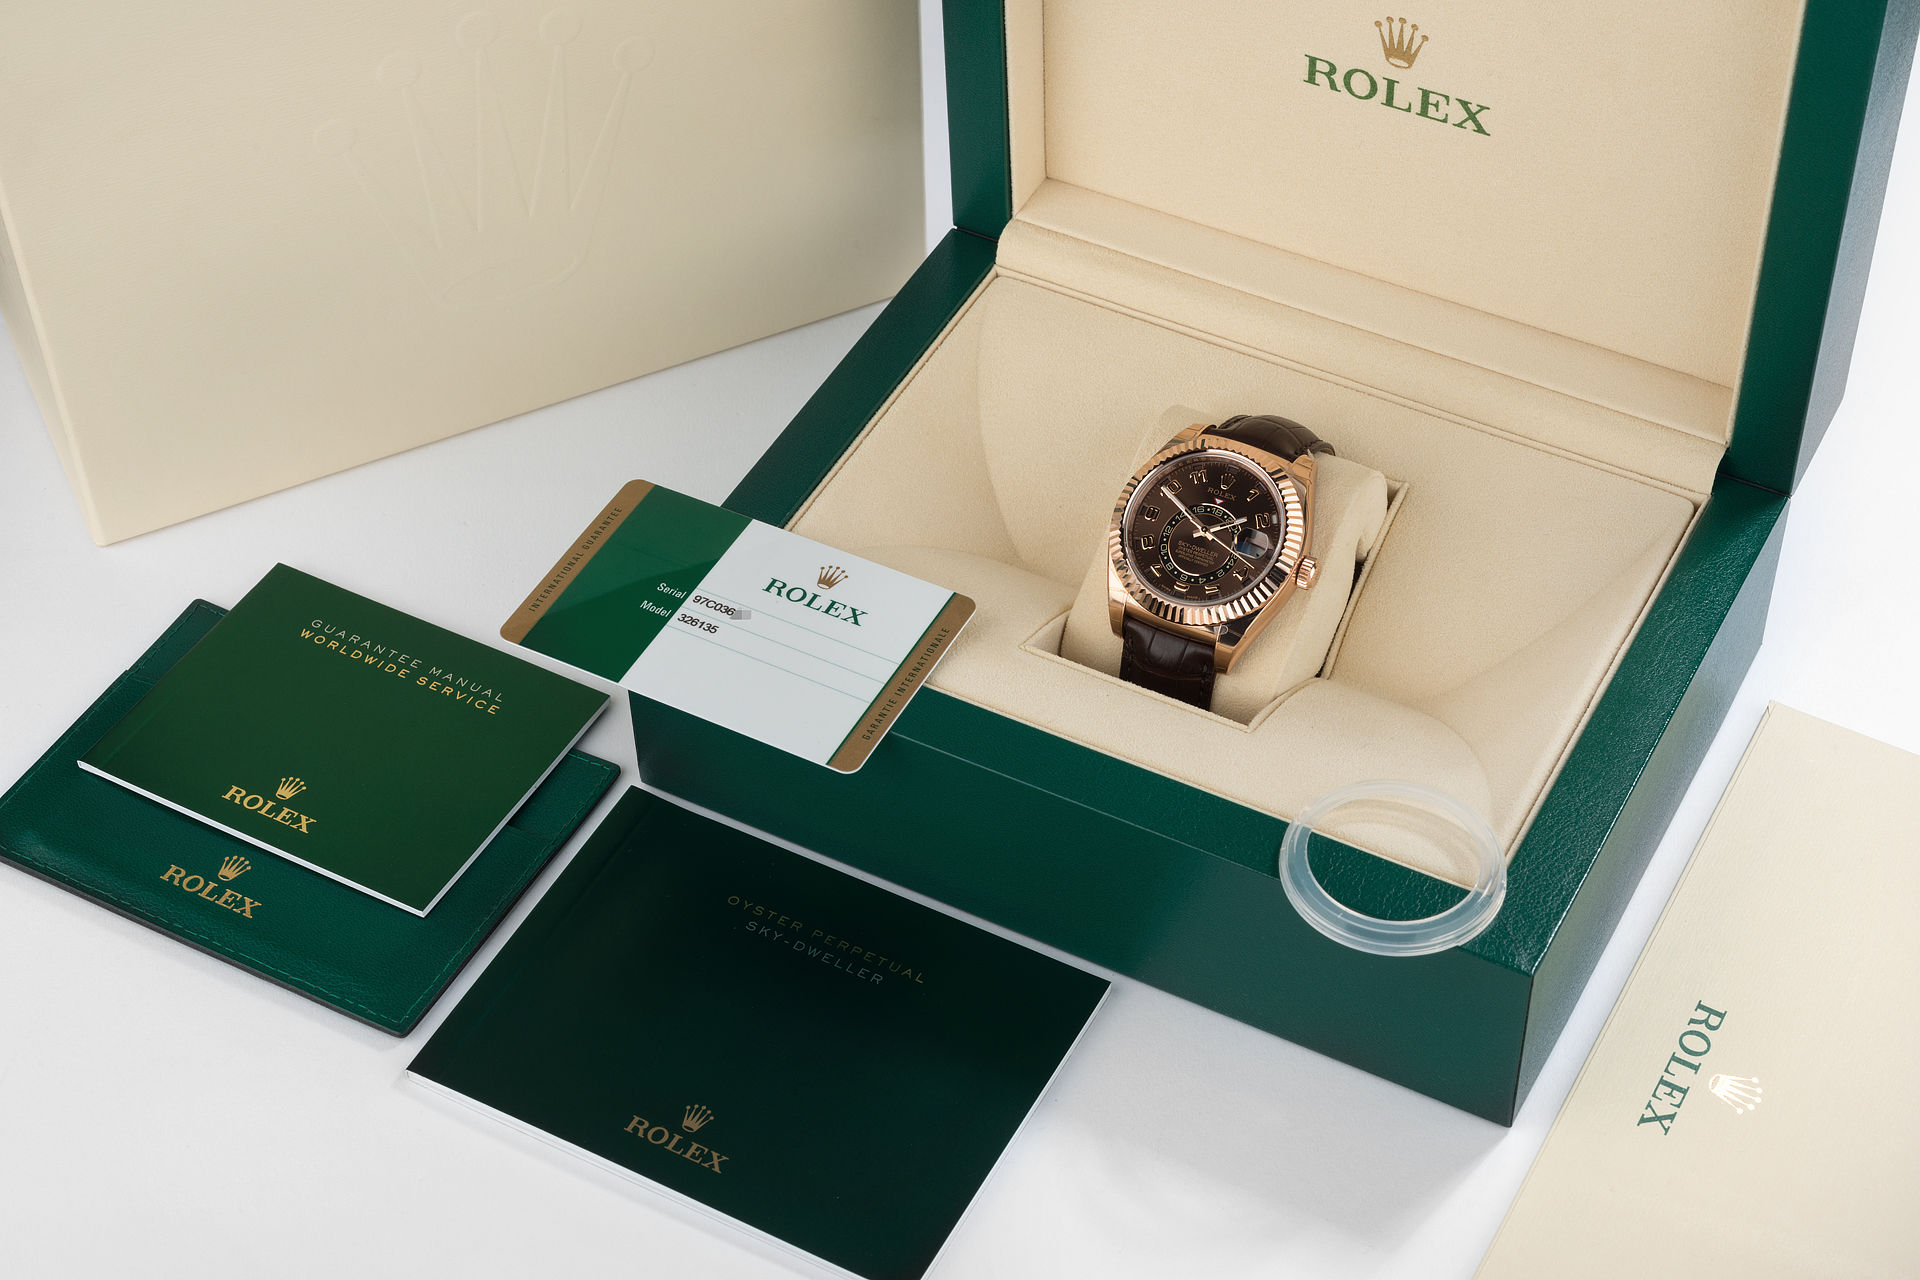 ref 326135 | Unworn & Fully Stickered | Rolex Sky-Dweller